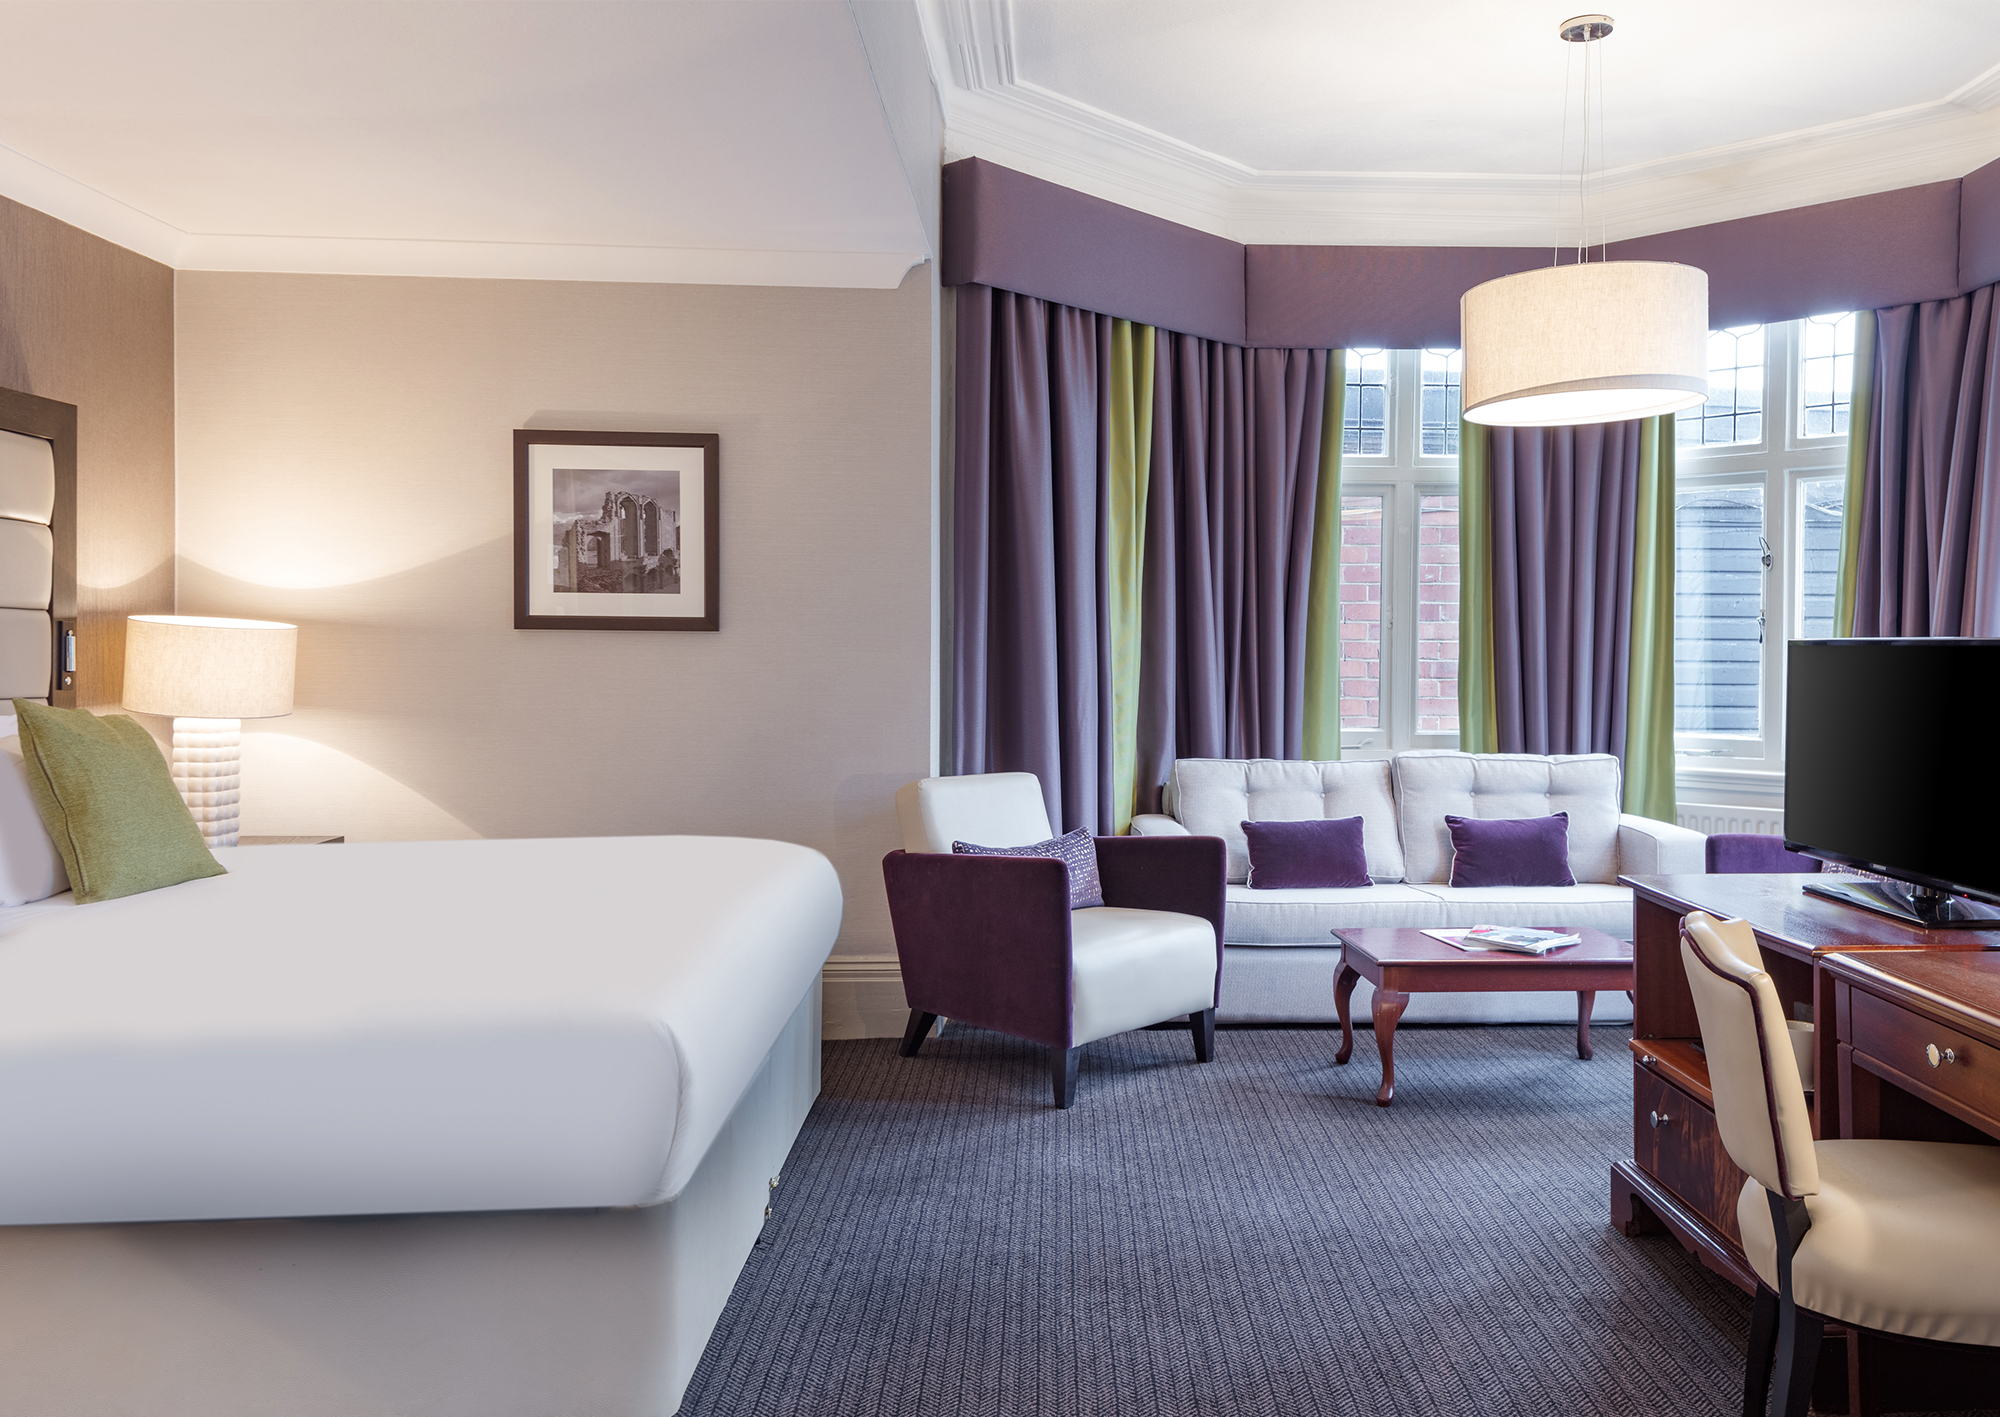 king junior suite chesford grange